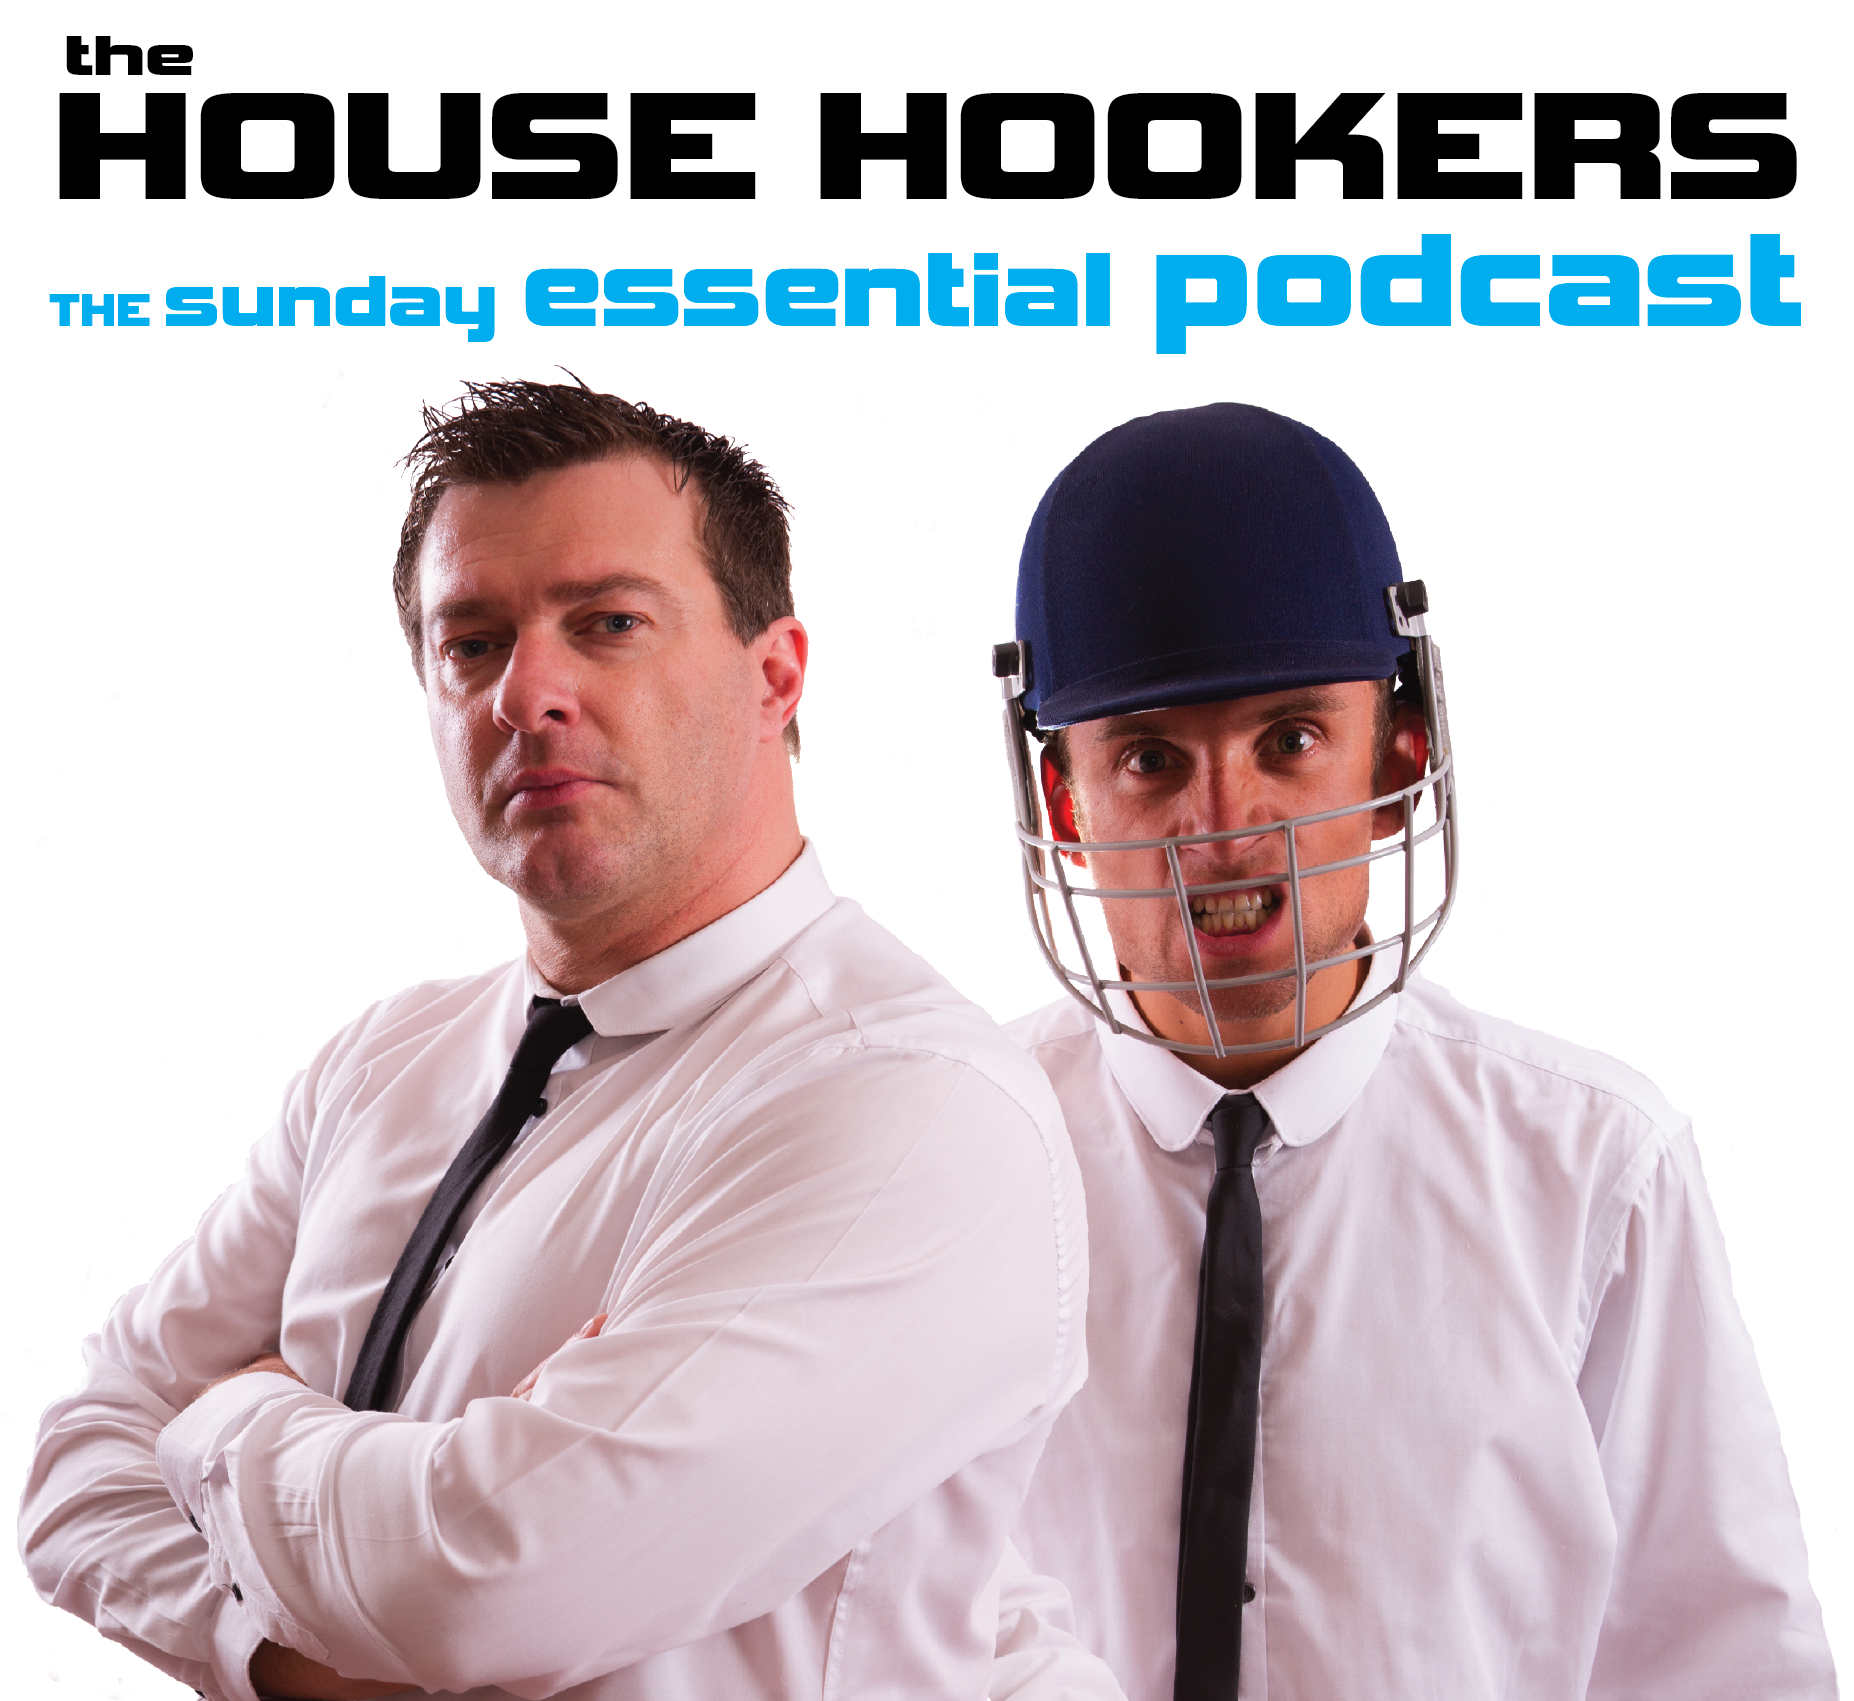 The house hookers sunday essential podcast september 2012 for Essential house music